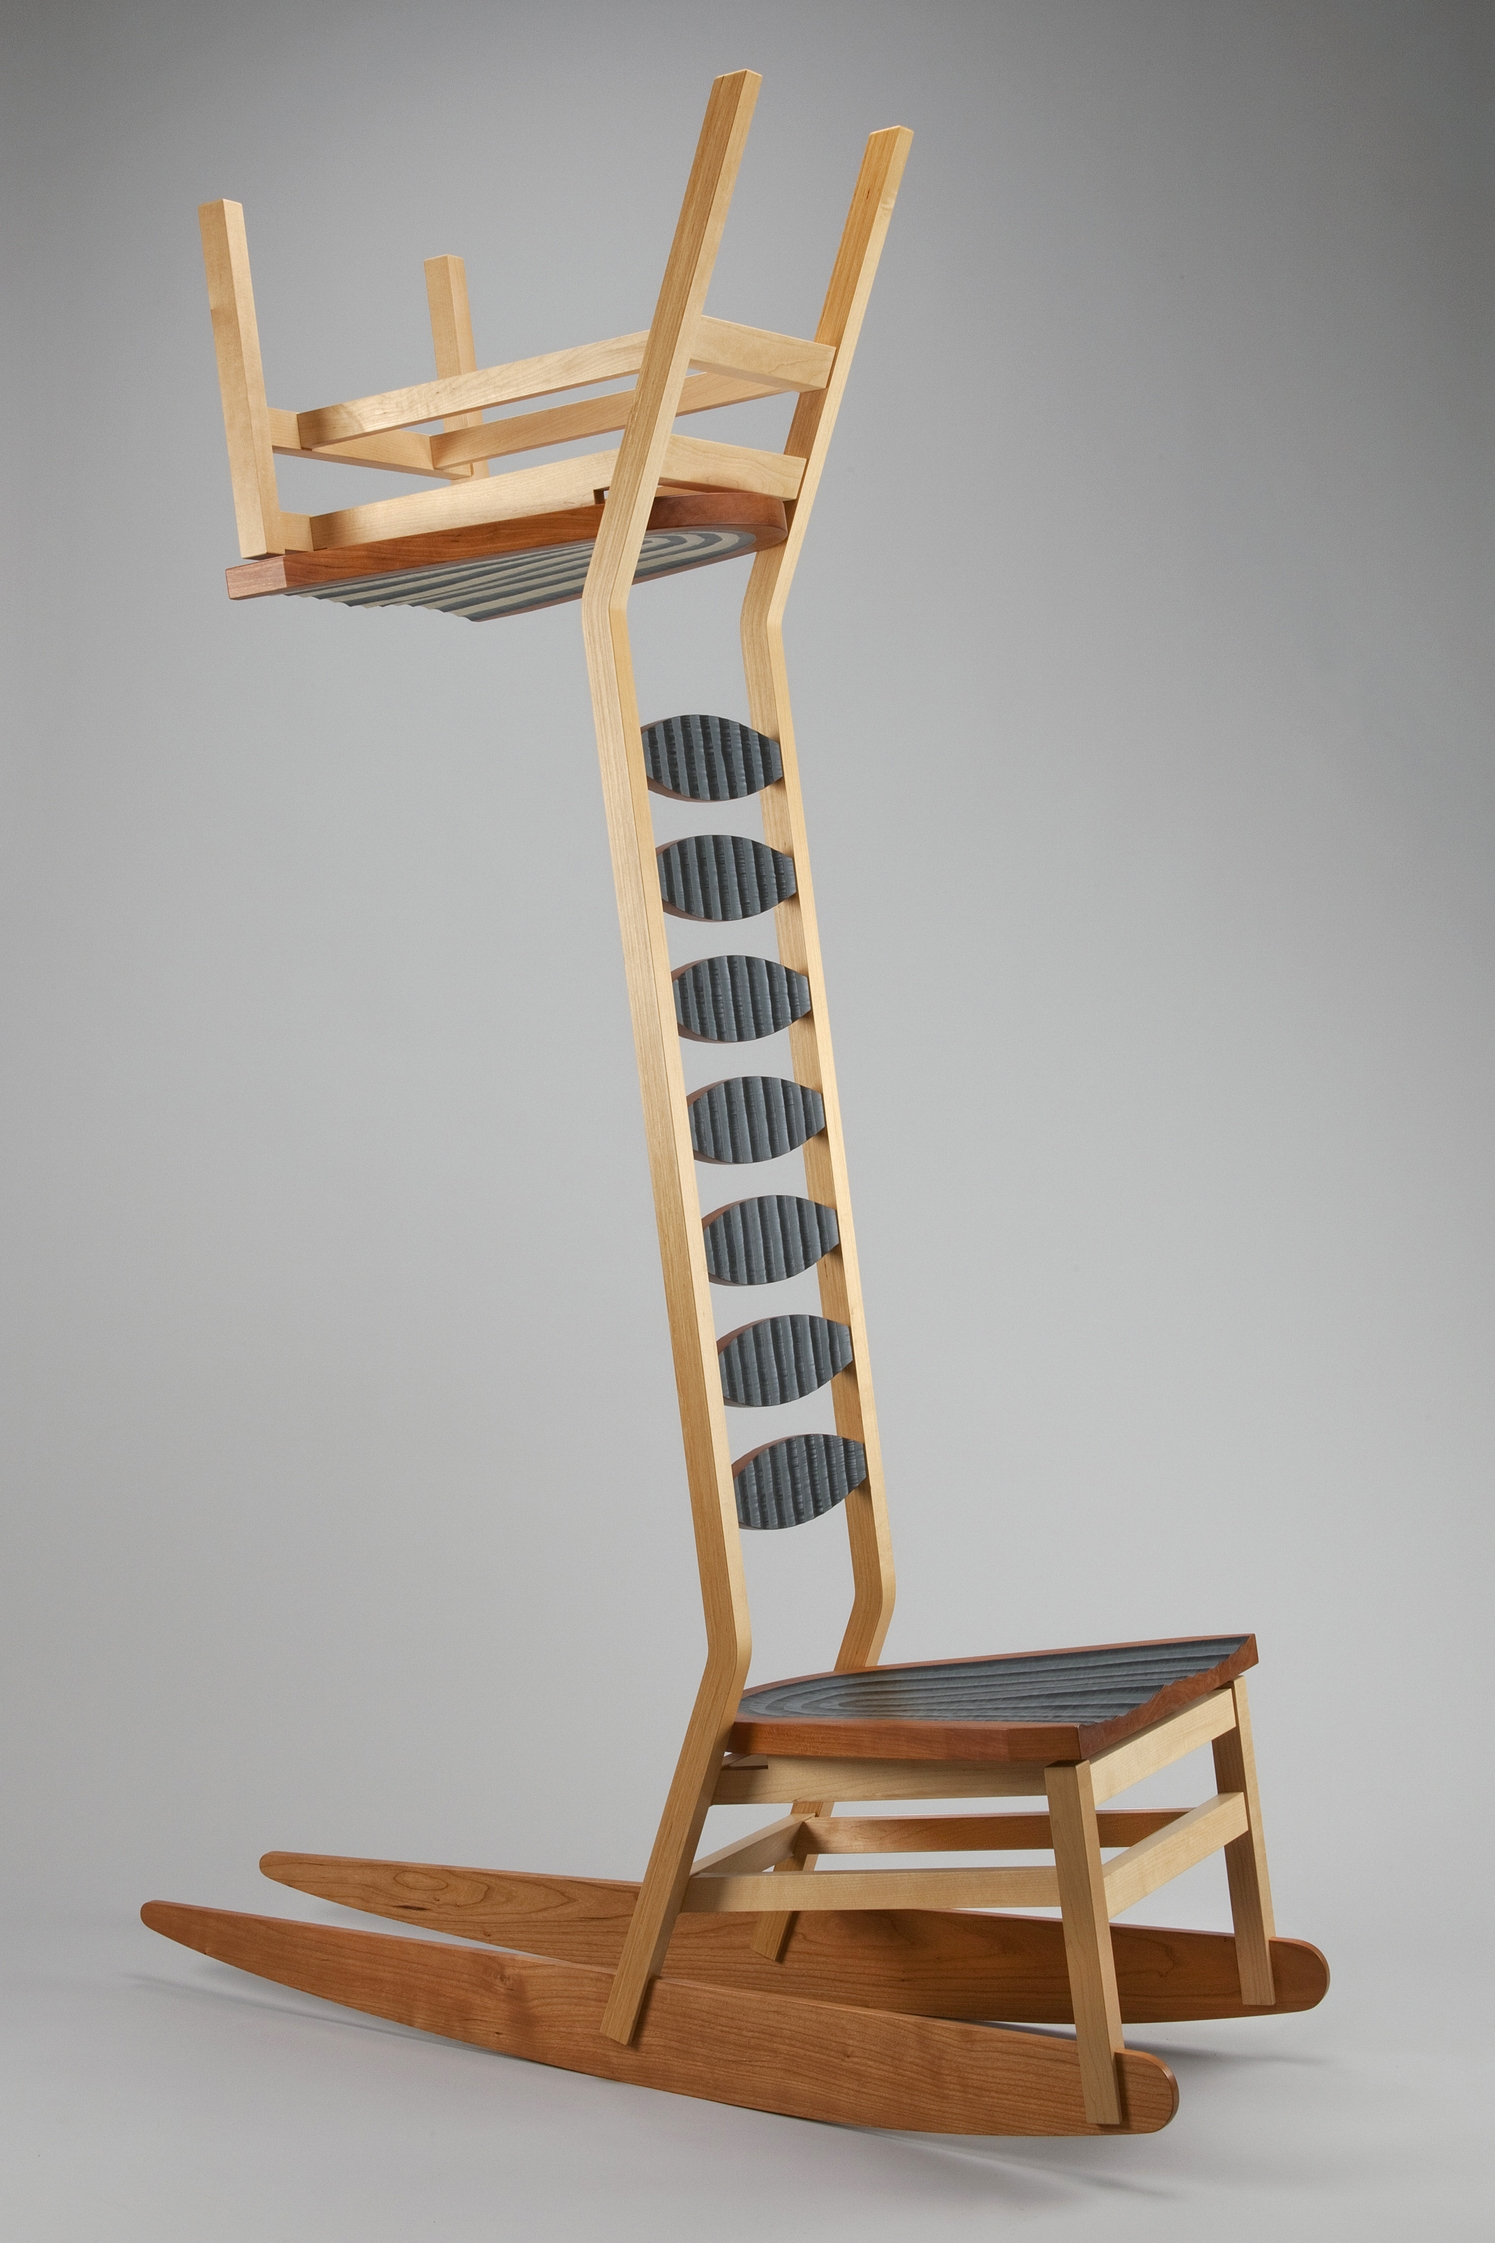 LadderbackkcabreddaL #2  |  2005  |  wood, paint  |  87 x 41 x 21